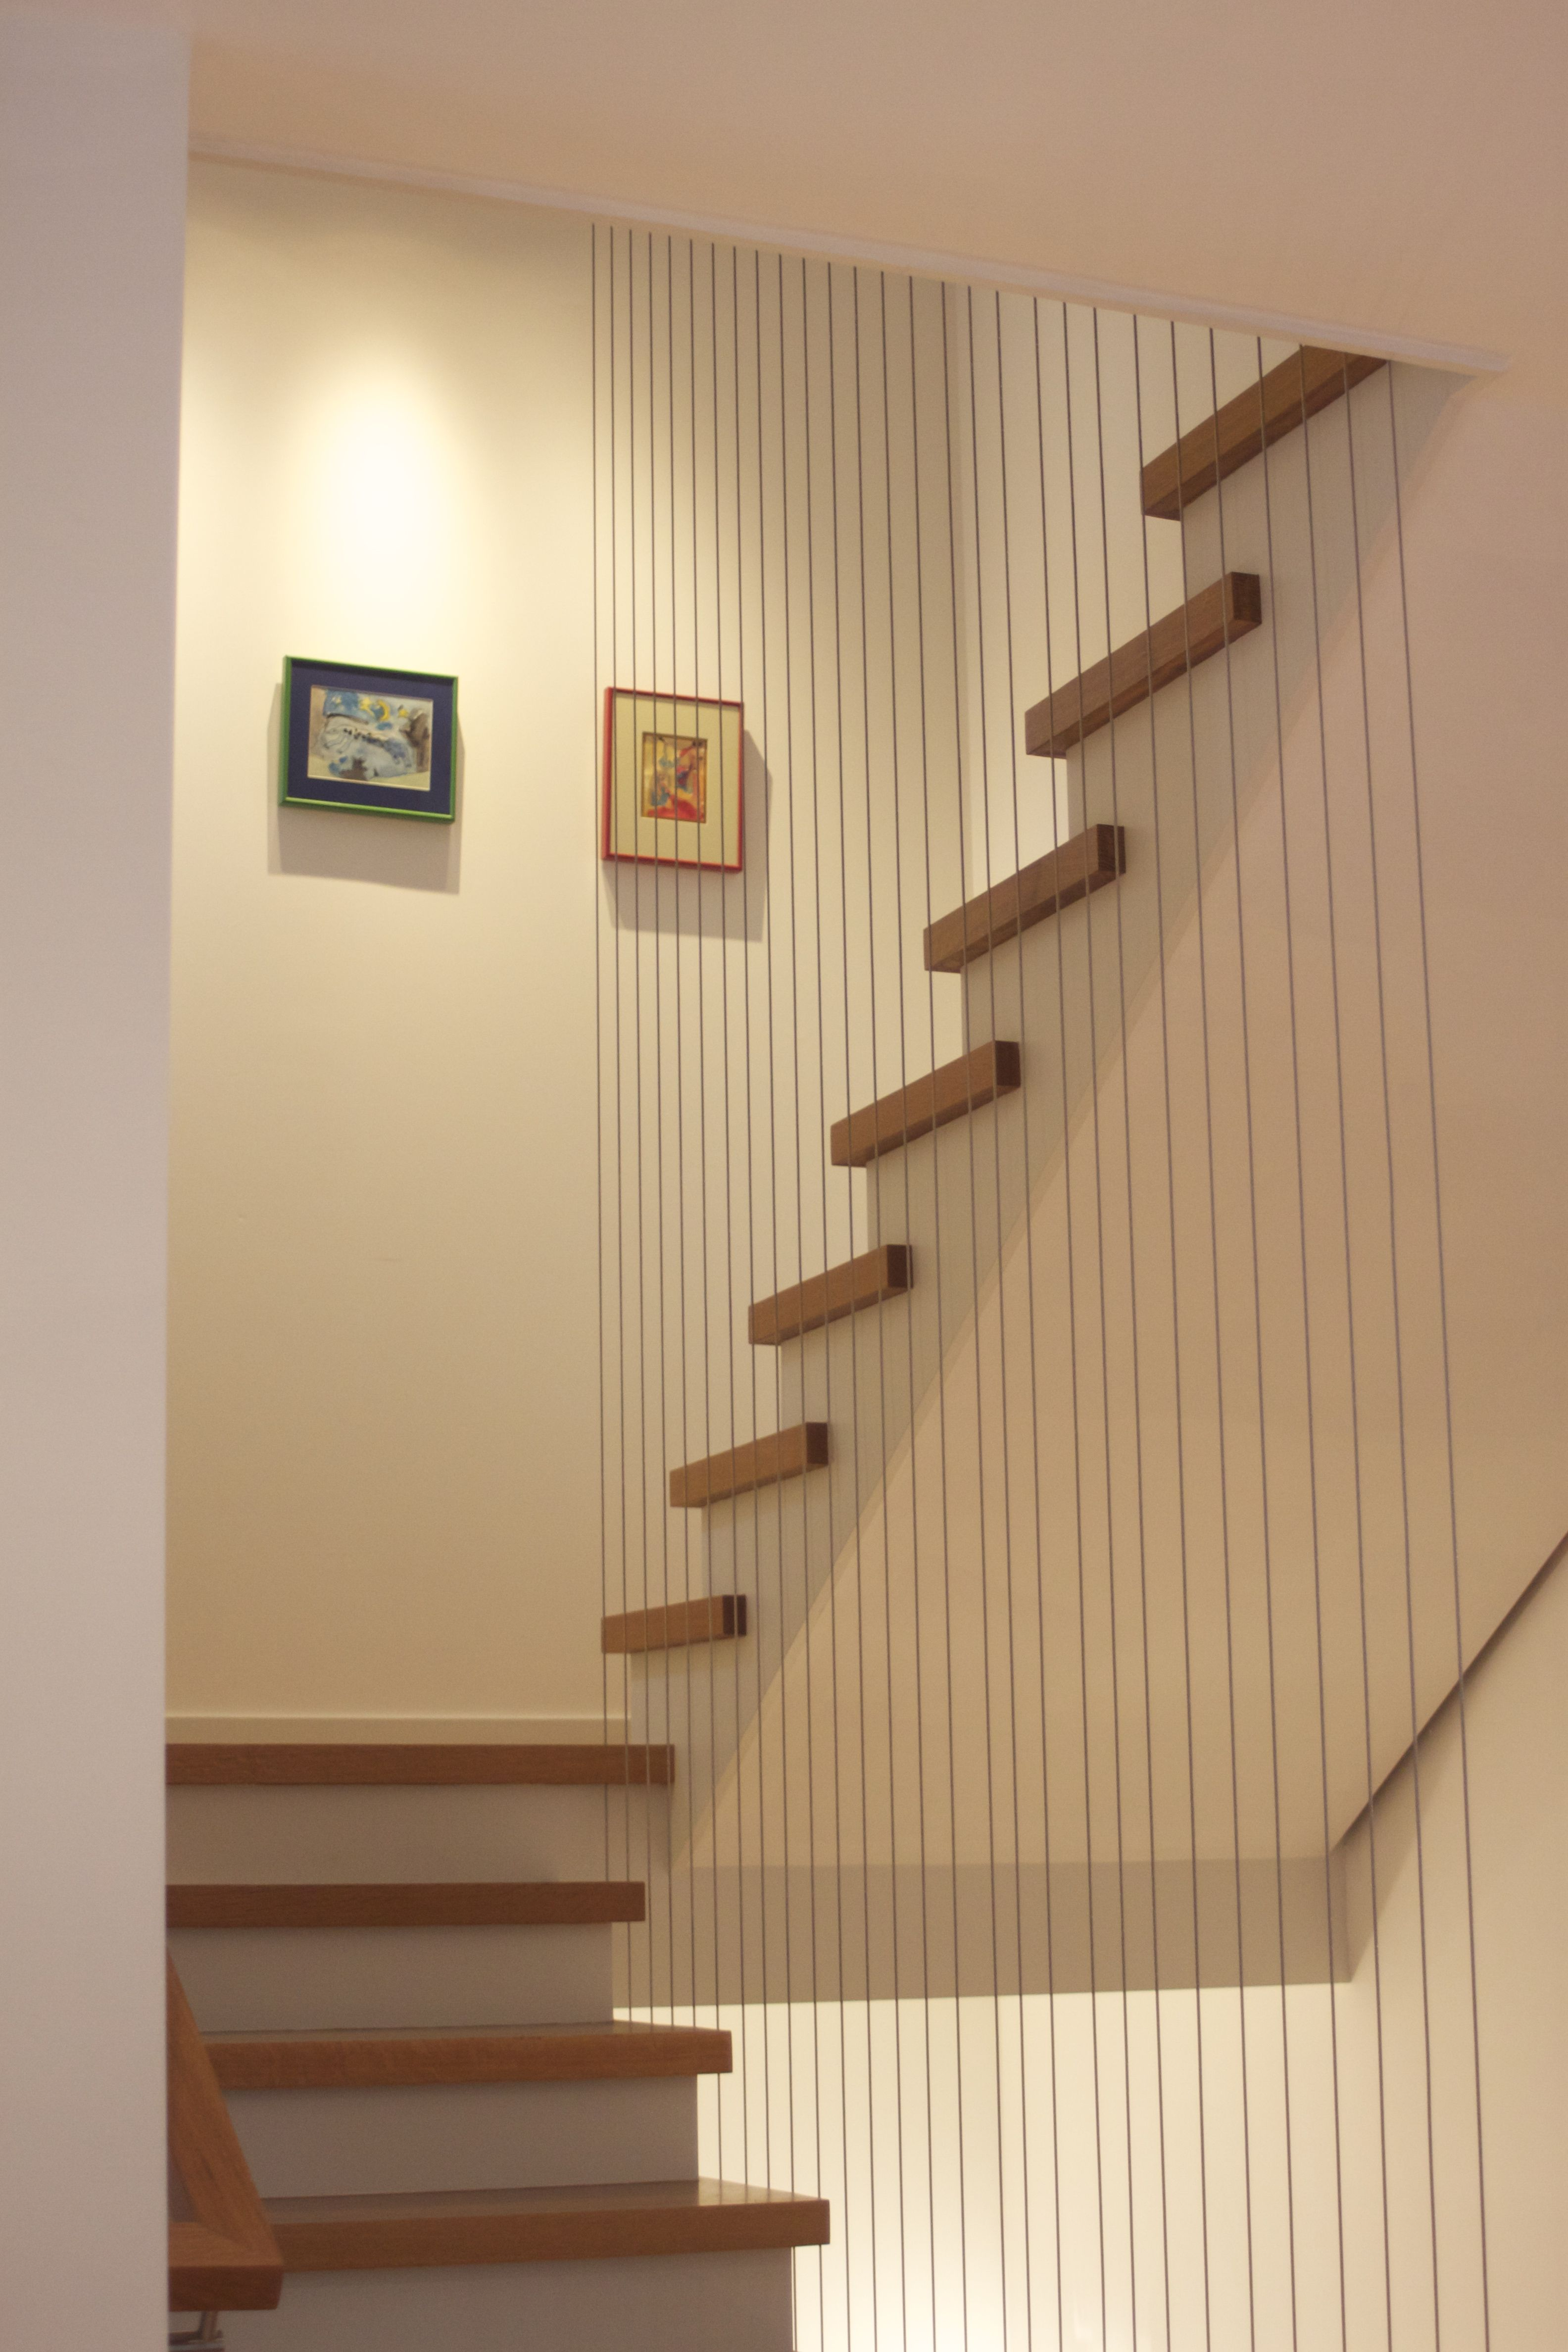 TOP OF VERTICAL CABLE RAIL AT CENTER OF STAIR - Google ...